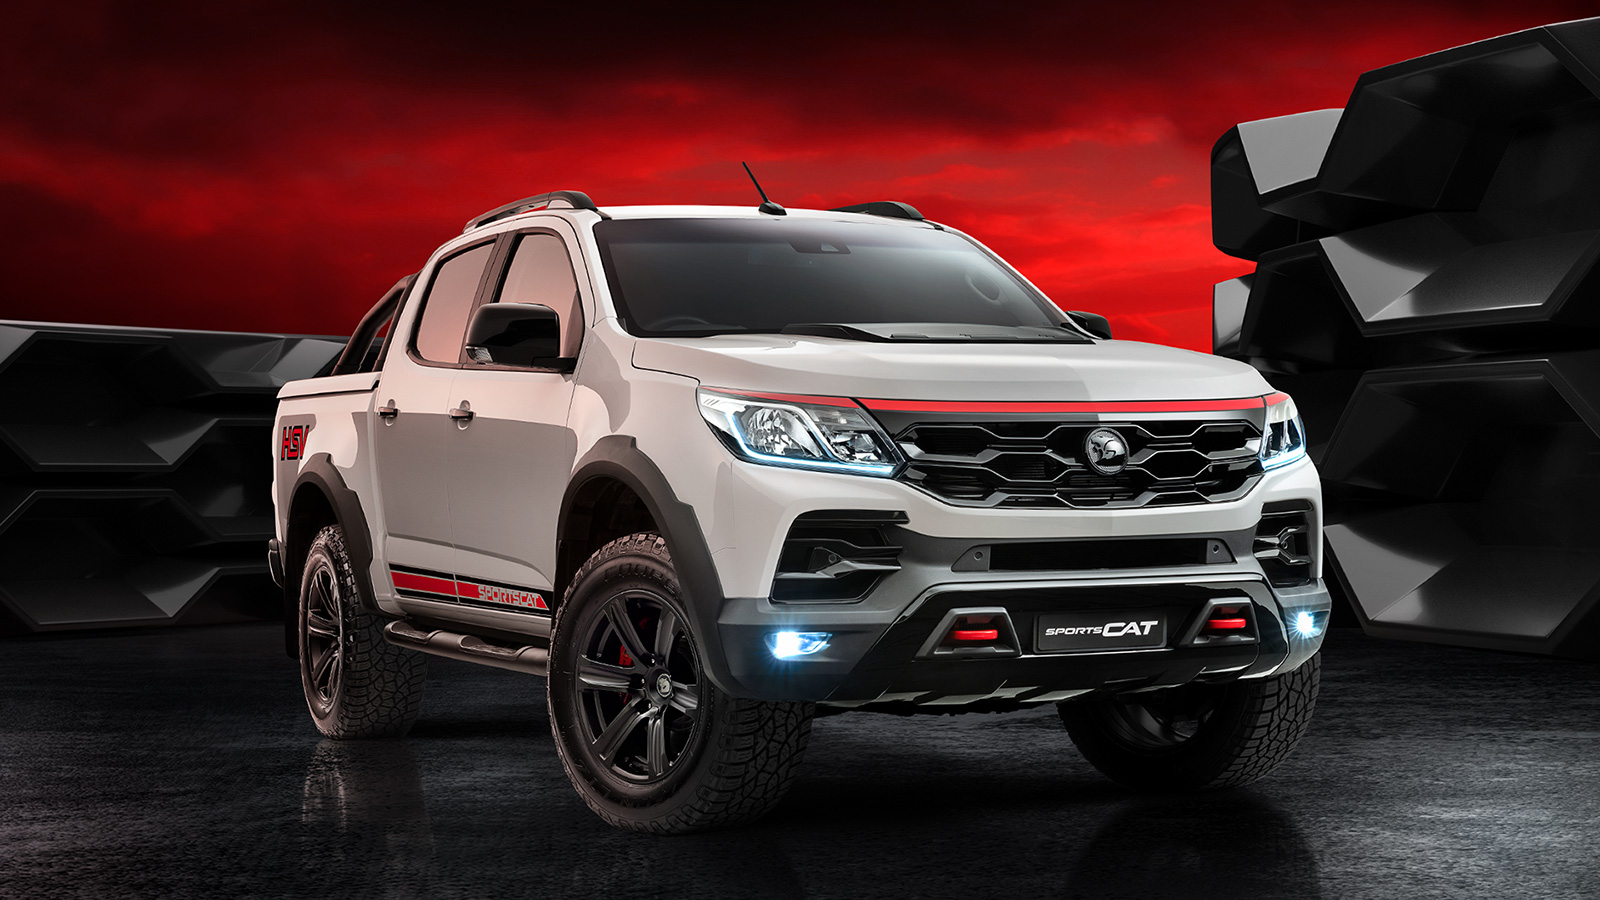 HSV-Releases-Limited-Edition-SportsCat-4x4-md